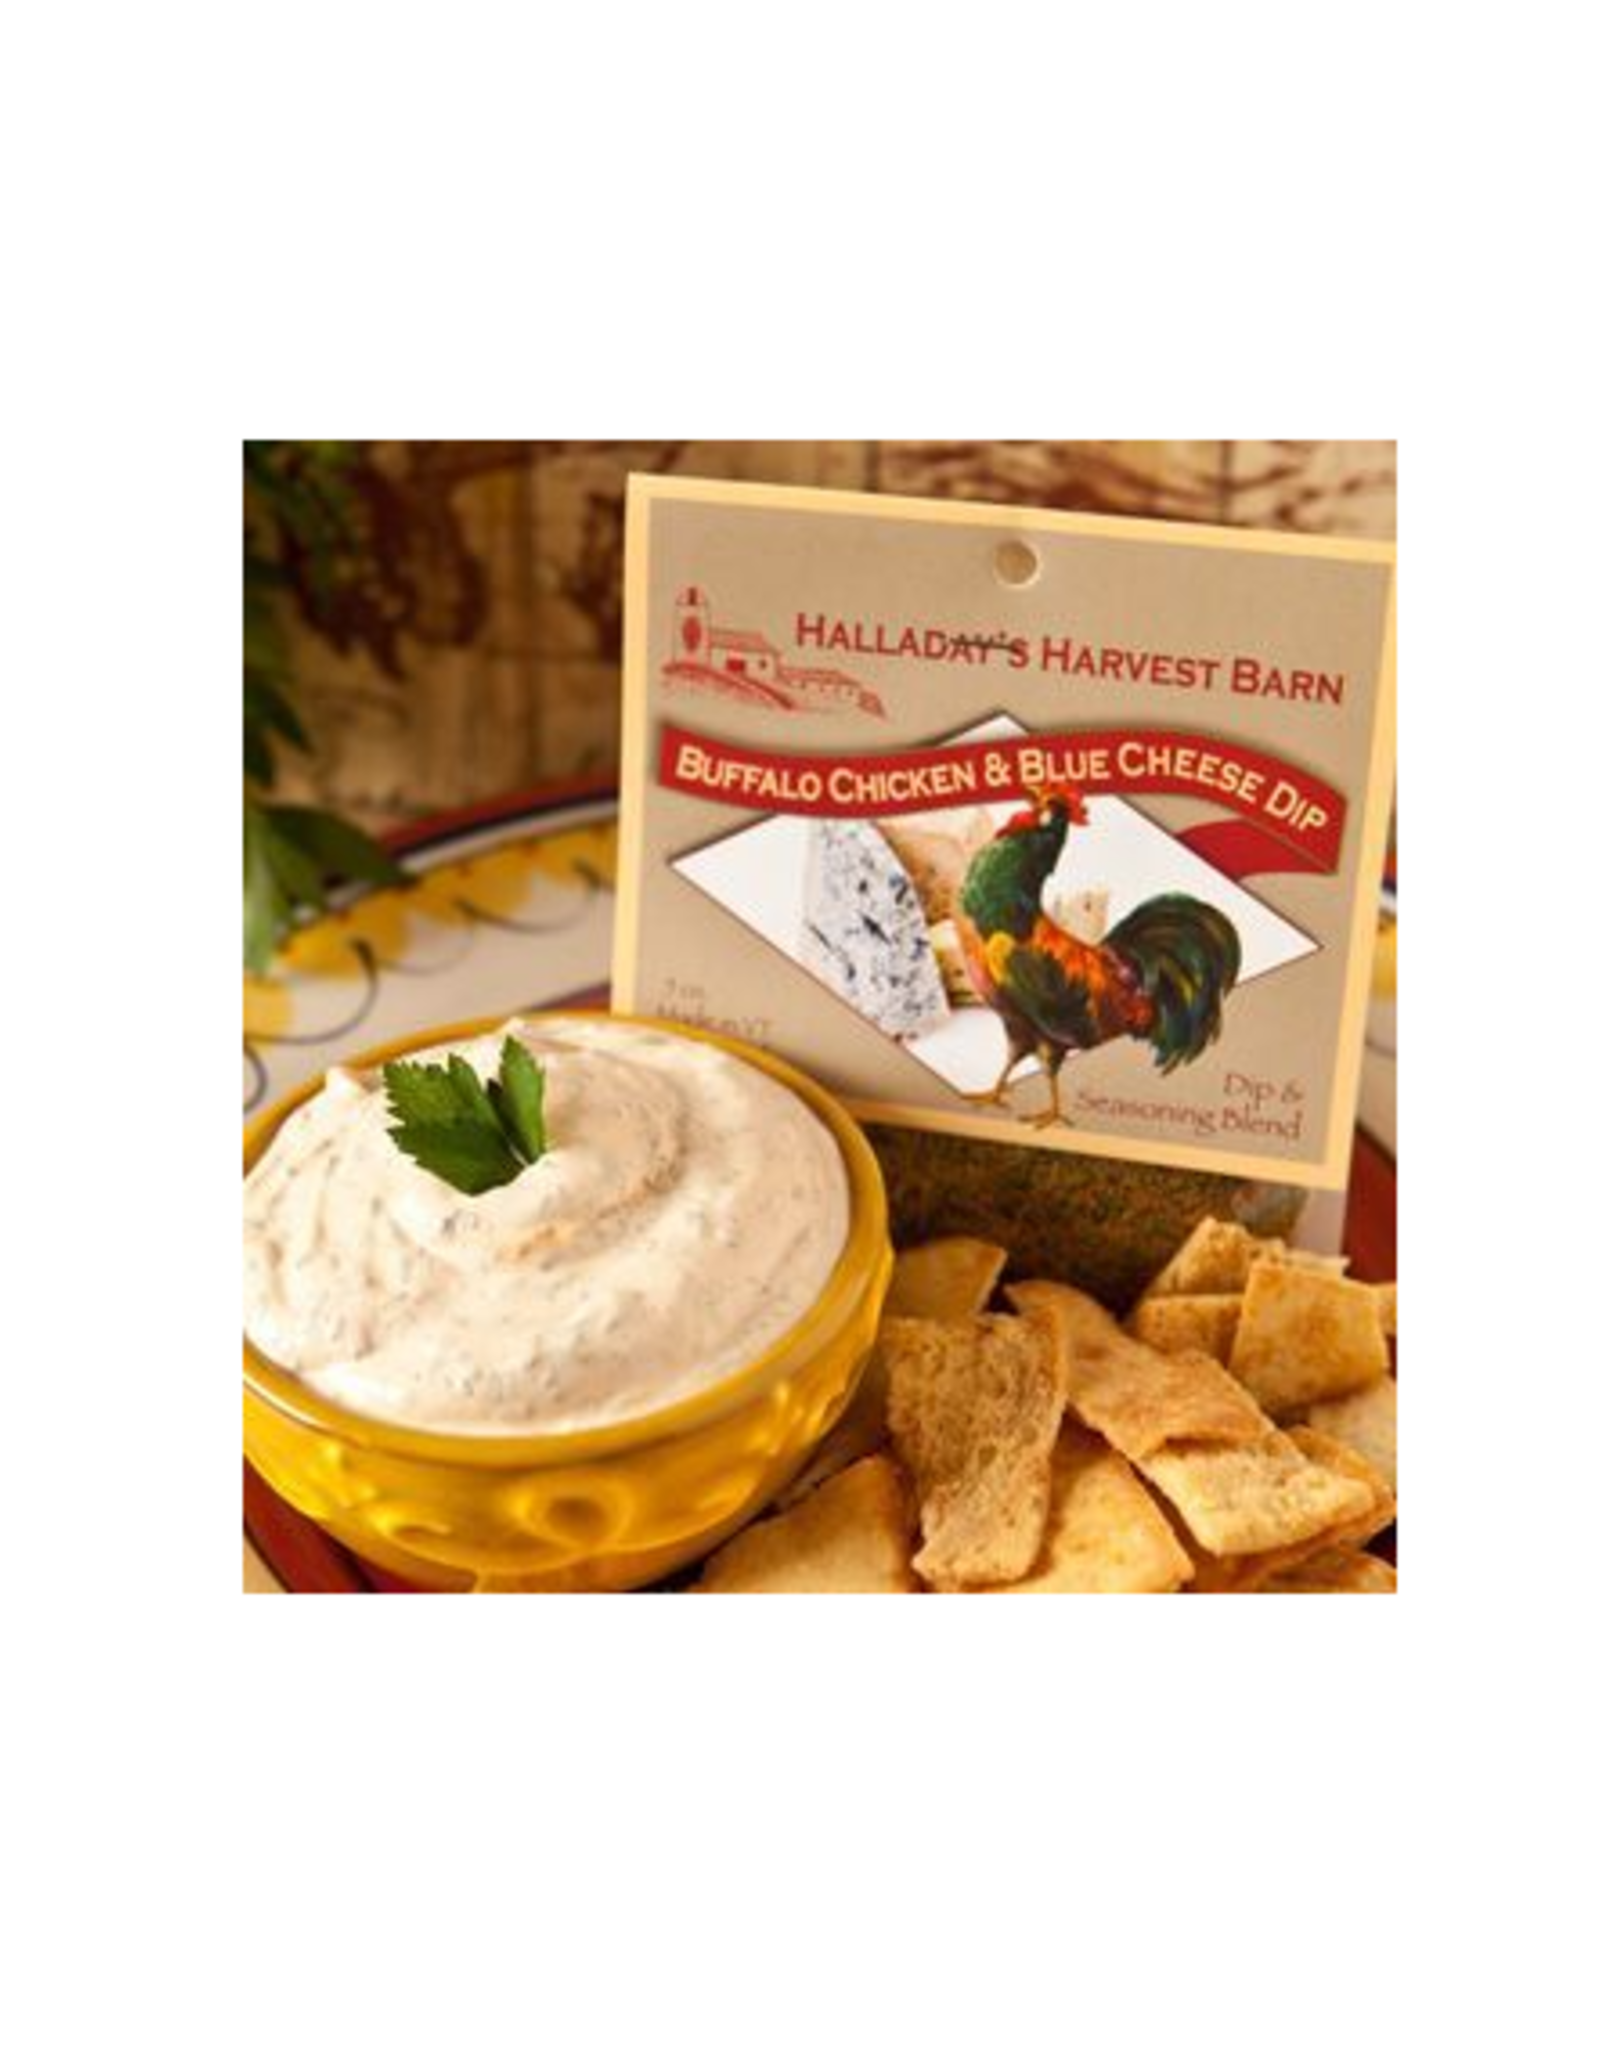 Halladay's Harvest Barn Buffalo Chicken & Blue Cheese Dip